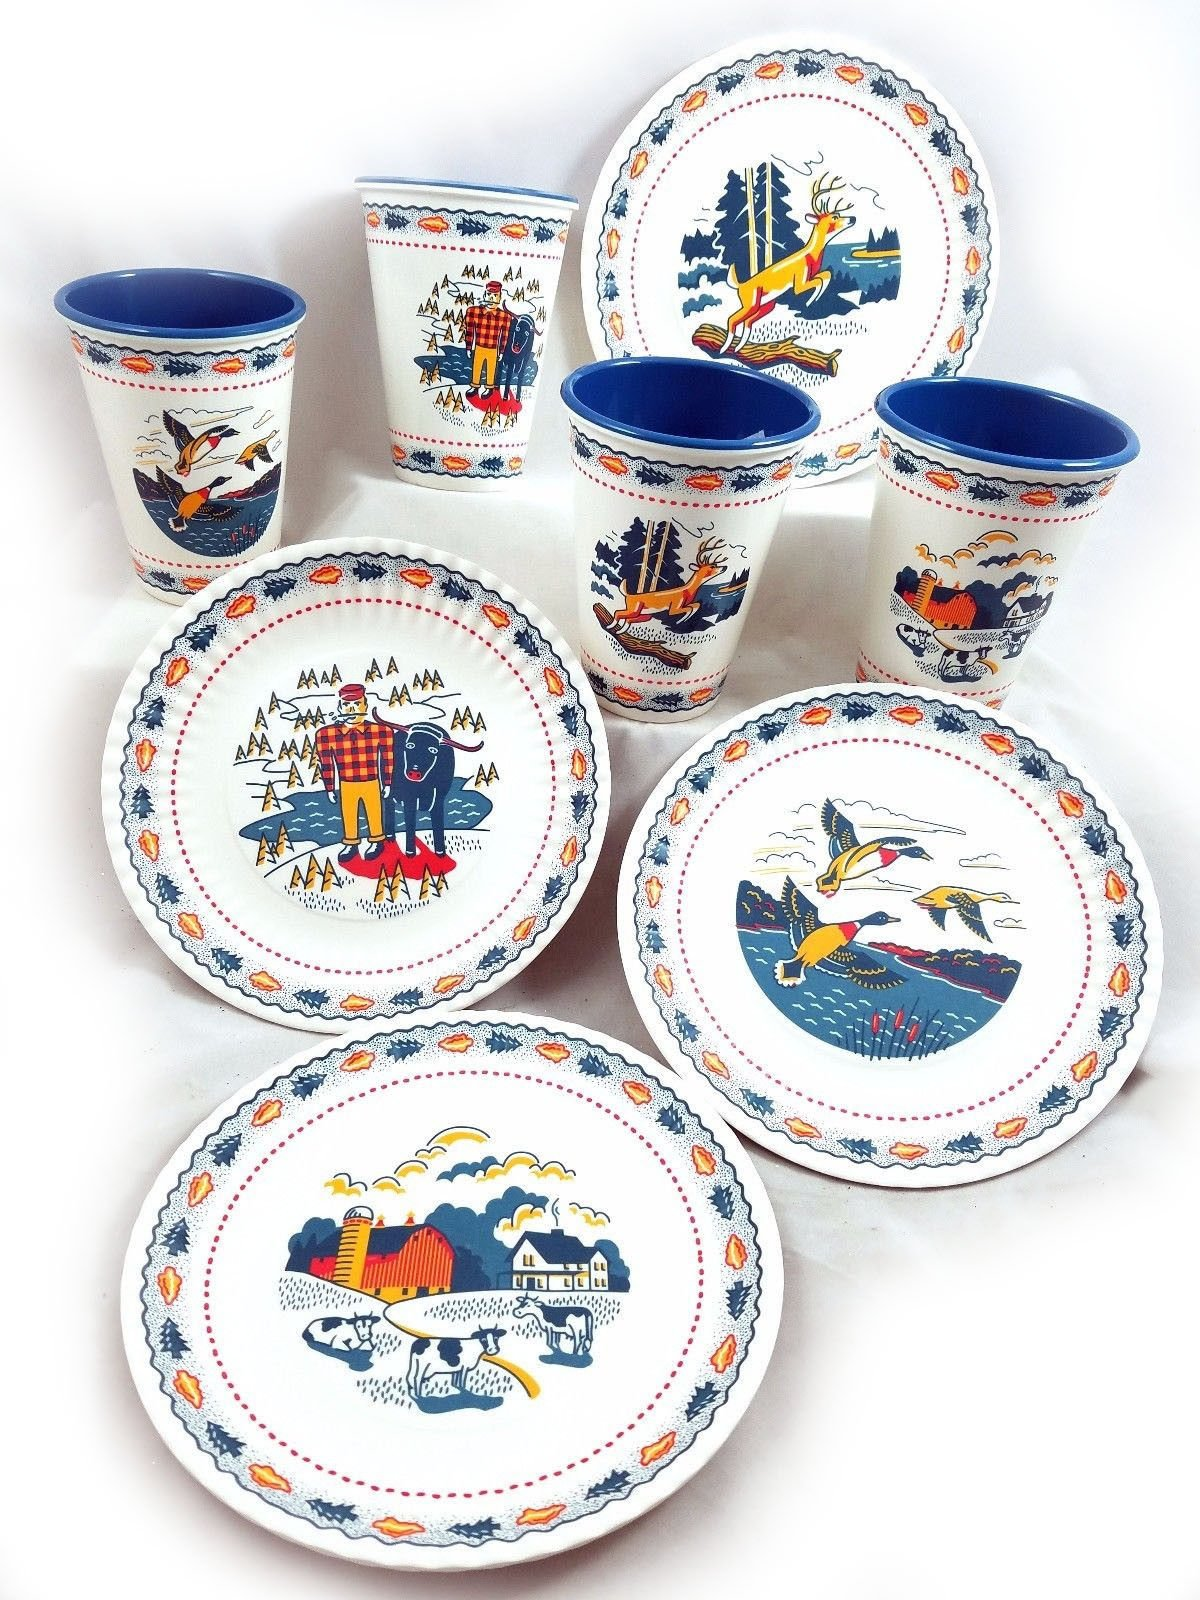 In The Woods Retro Melamine Snack Plates and Cups Set of 8 New Fishing Camping by 180 Degrees (Image #1)